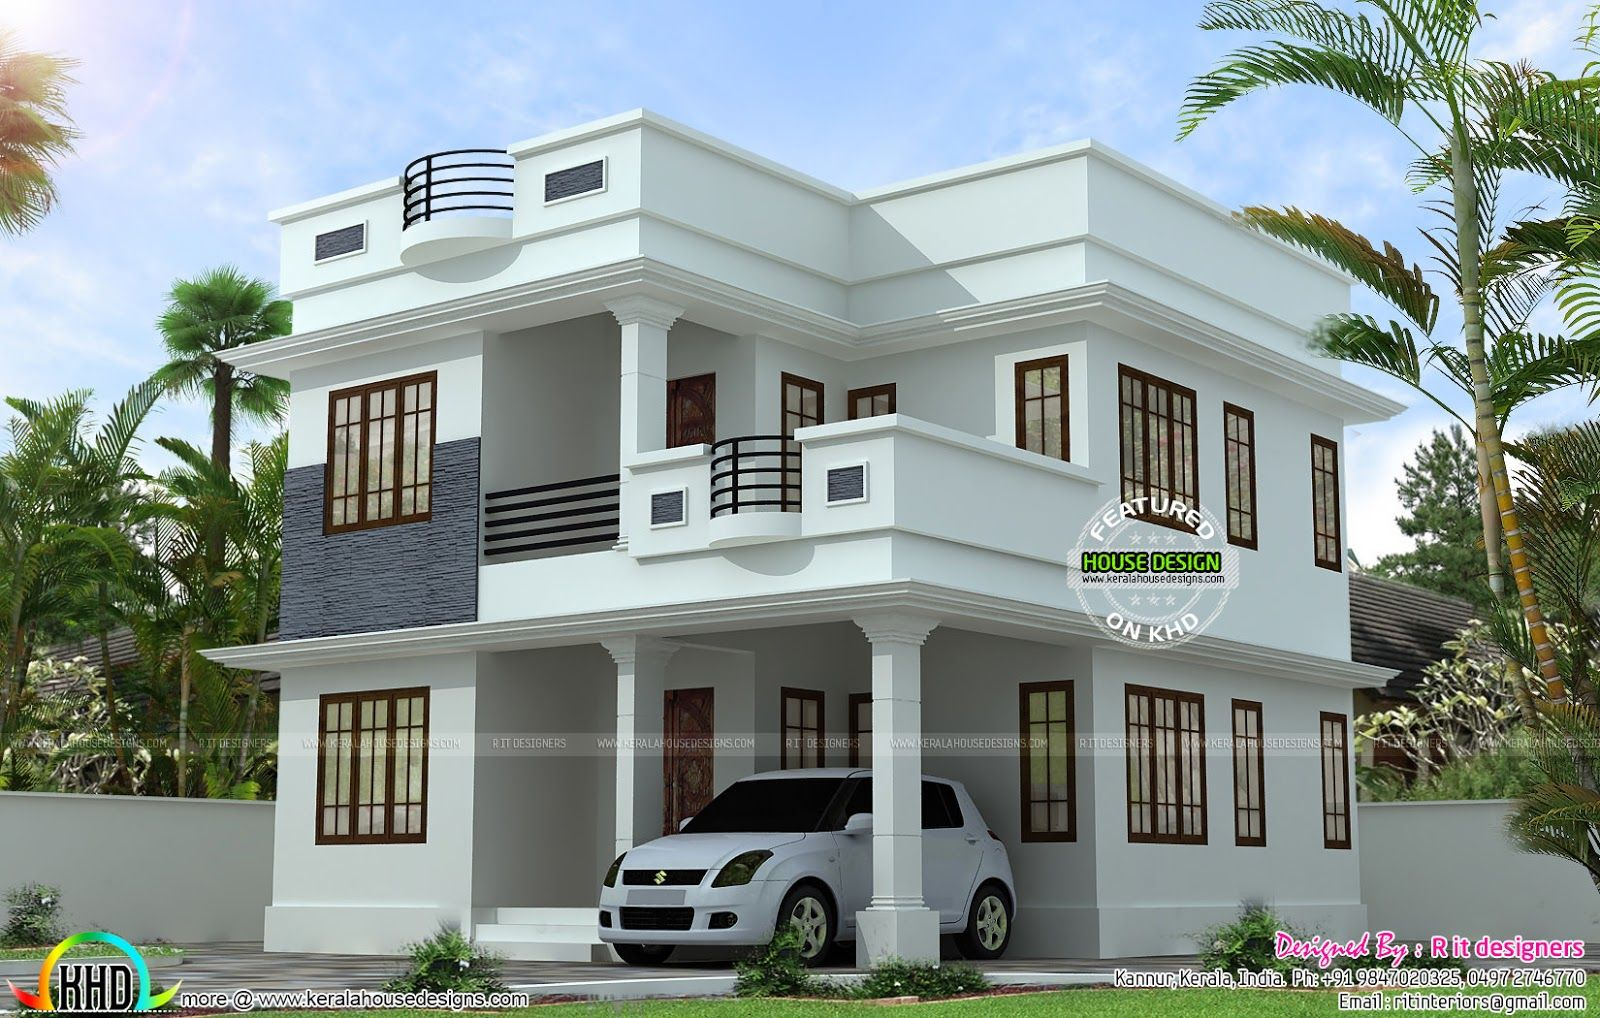 Home Design Decor In 2020 Bungalow House Design Kerala House